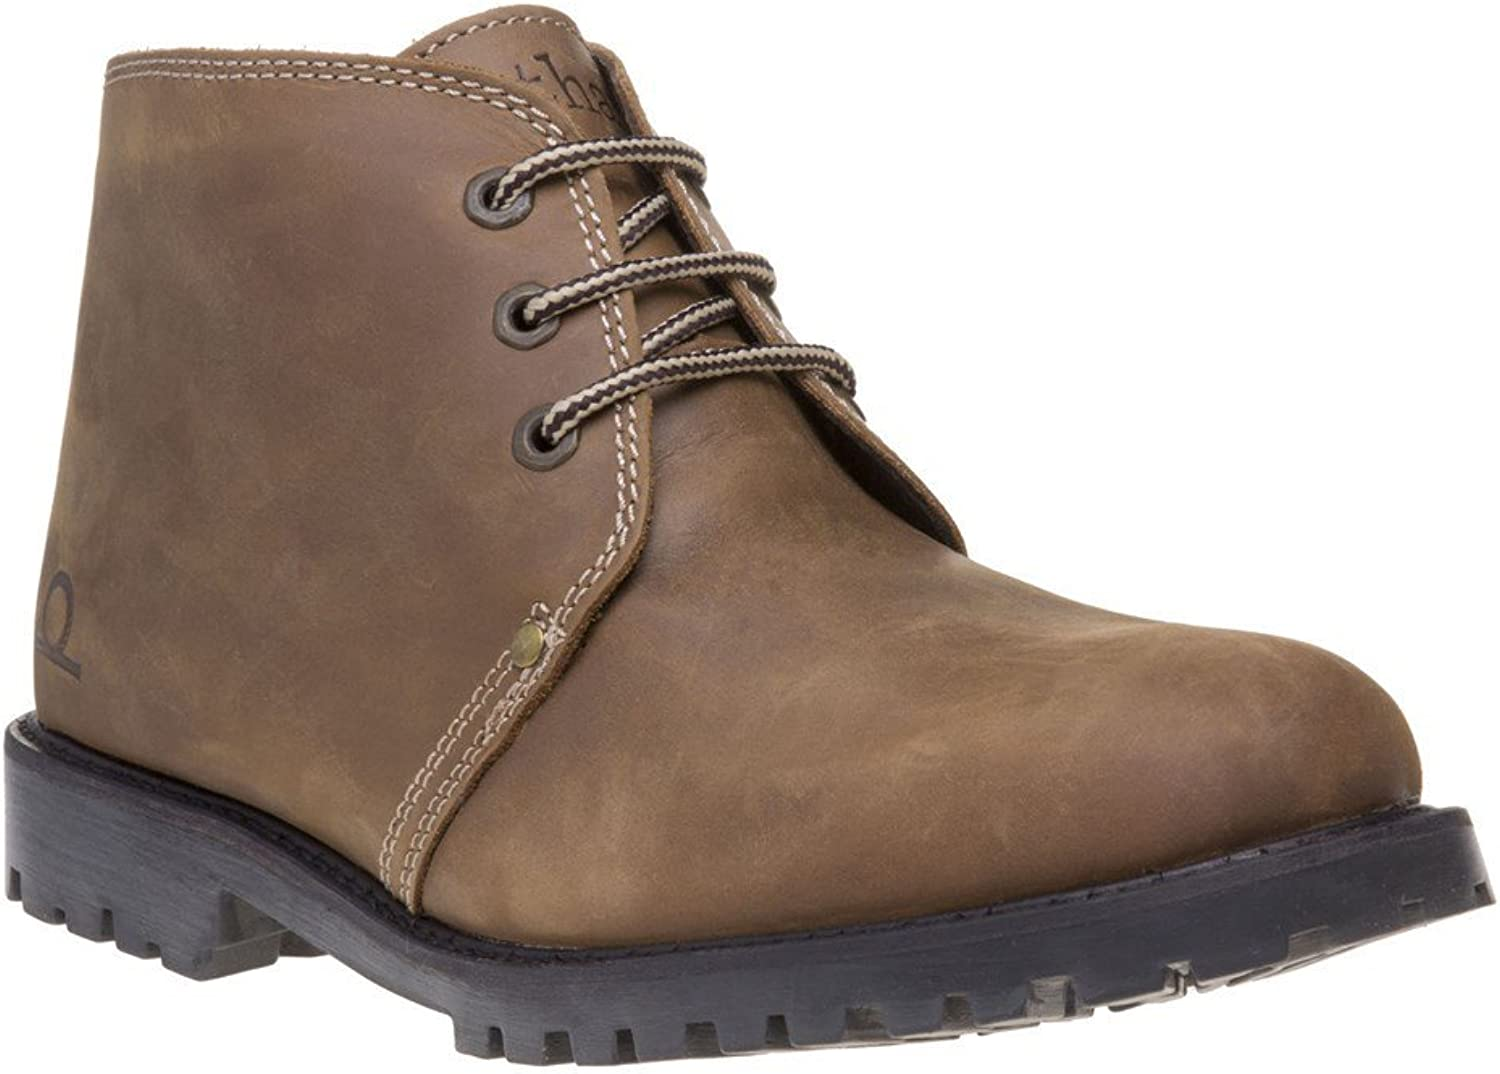 Chatham Marine colorado Ii Boots Brown